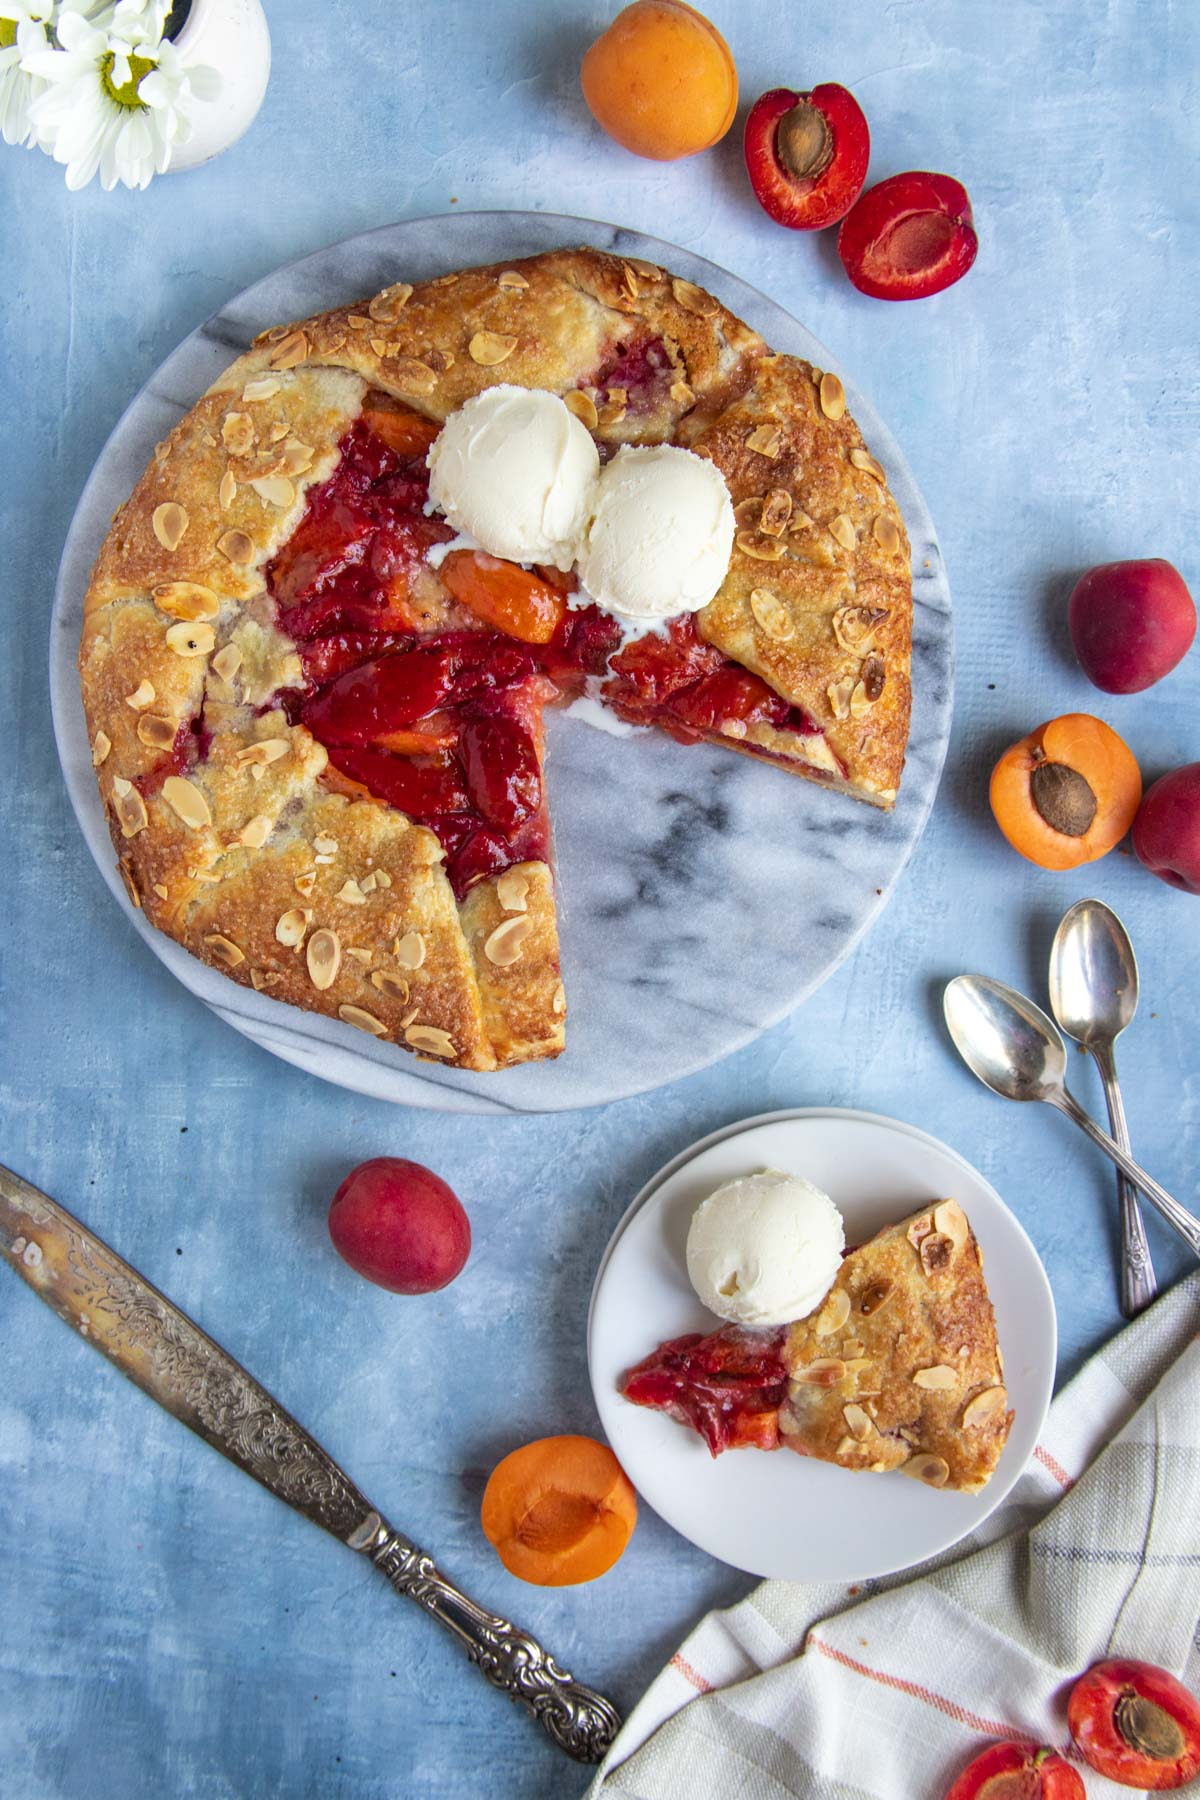 Apricot and almond galette topped with ice cream and surrounded by fresh apricots